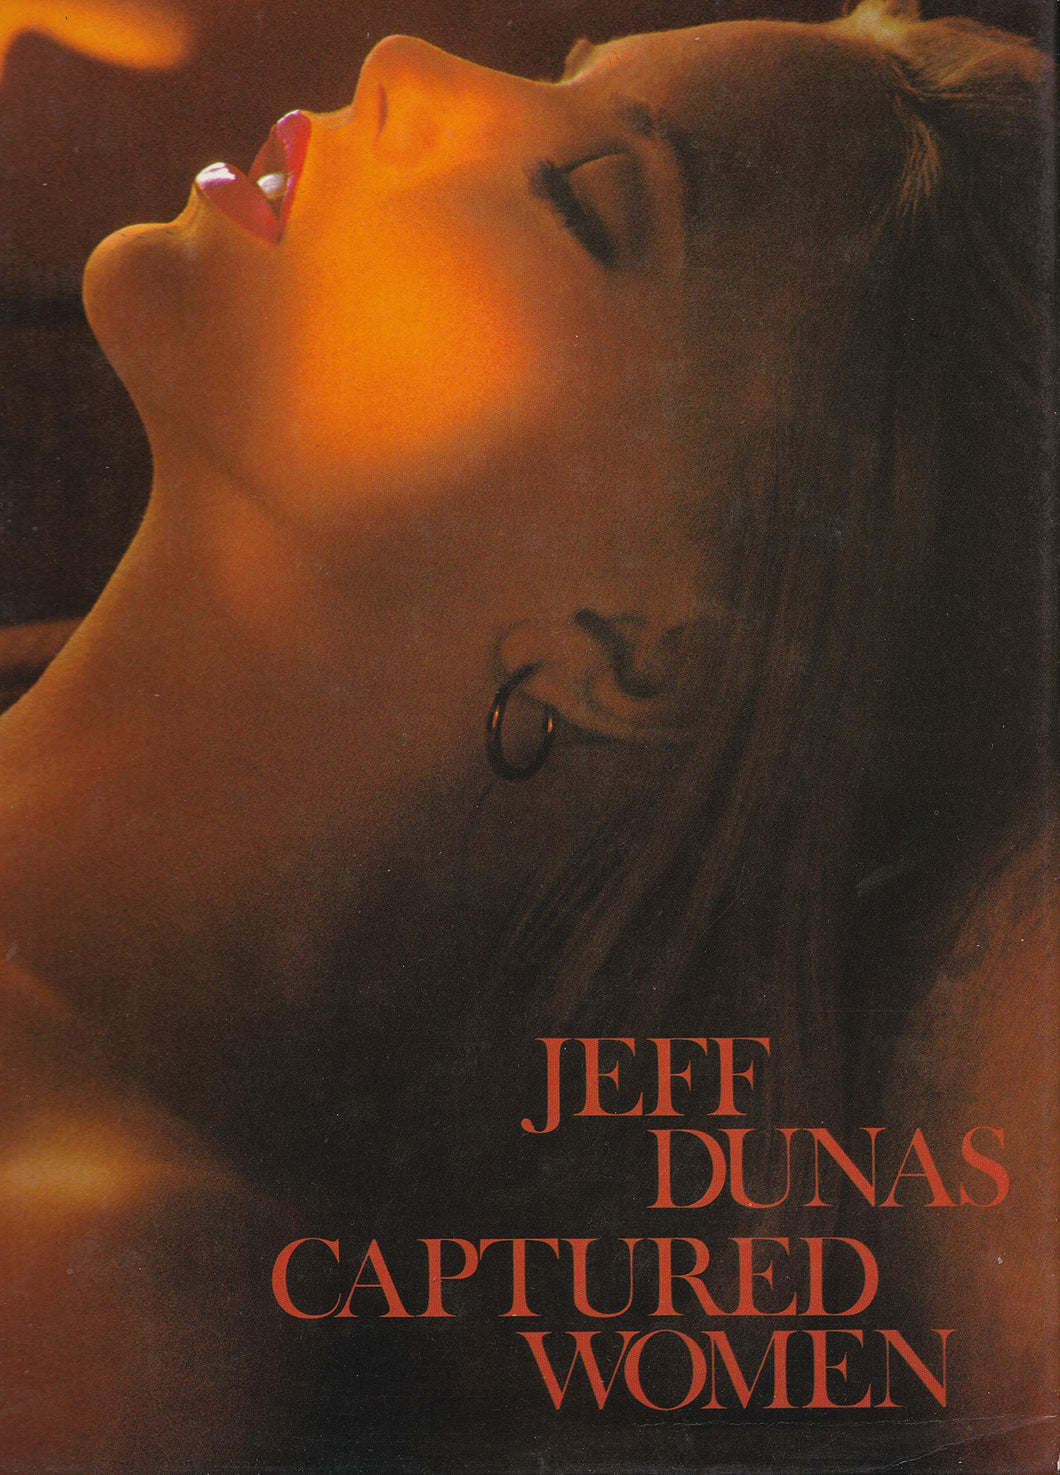 Captured Women by Jeff Dunas